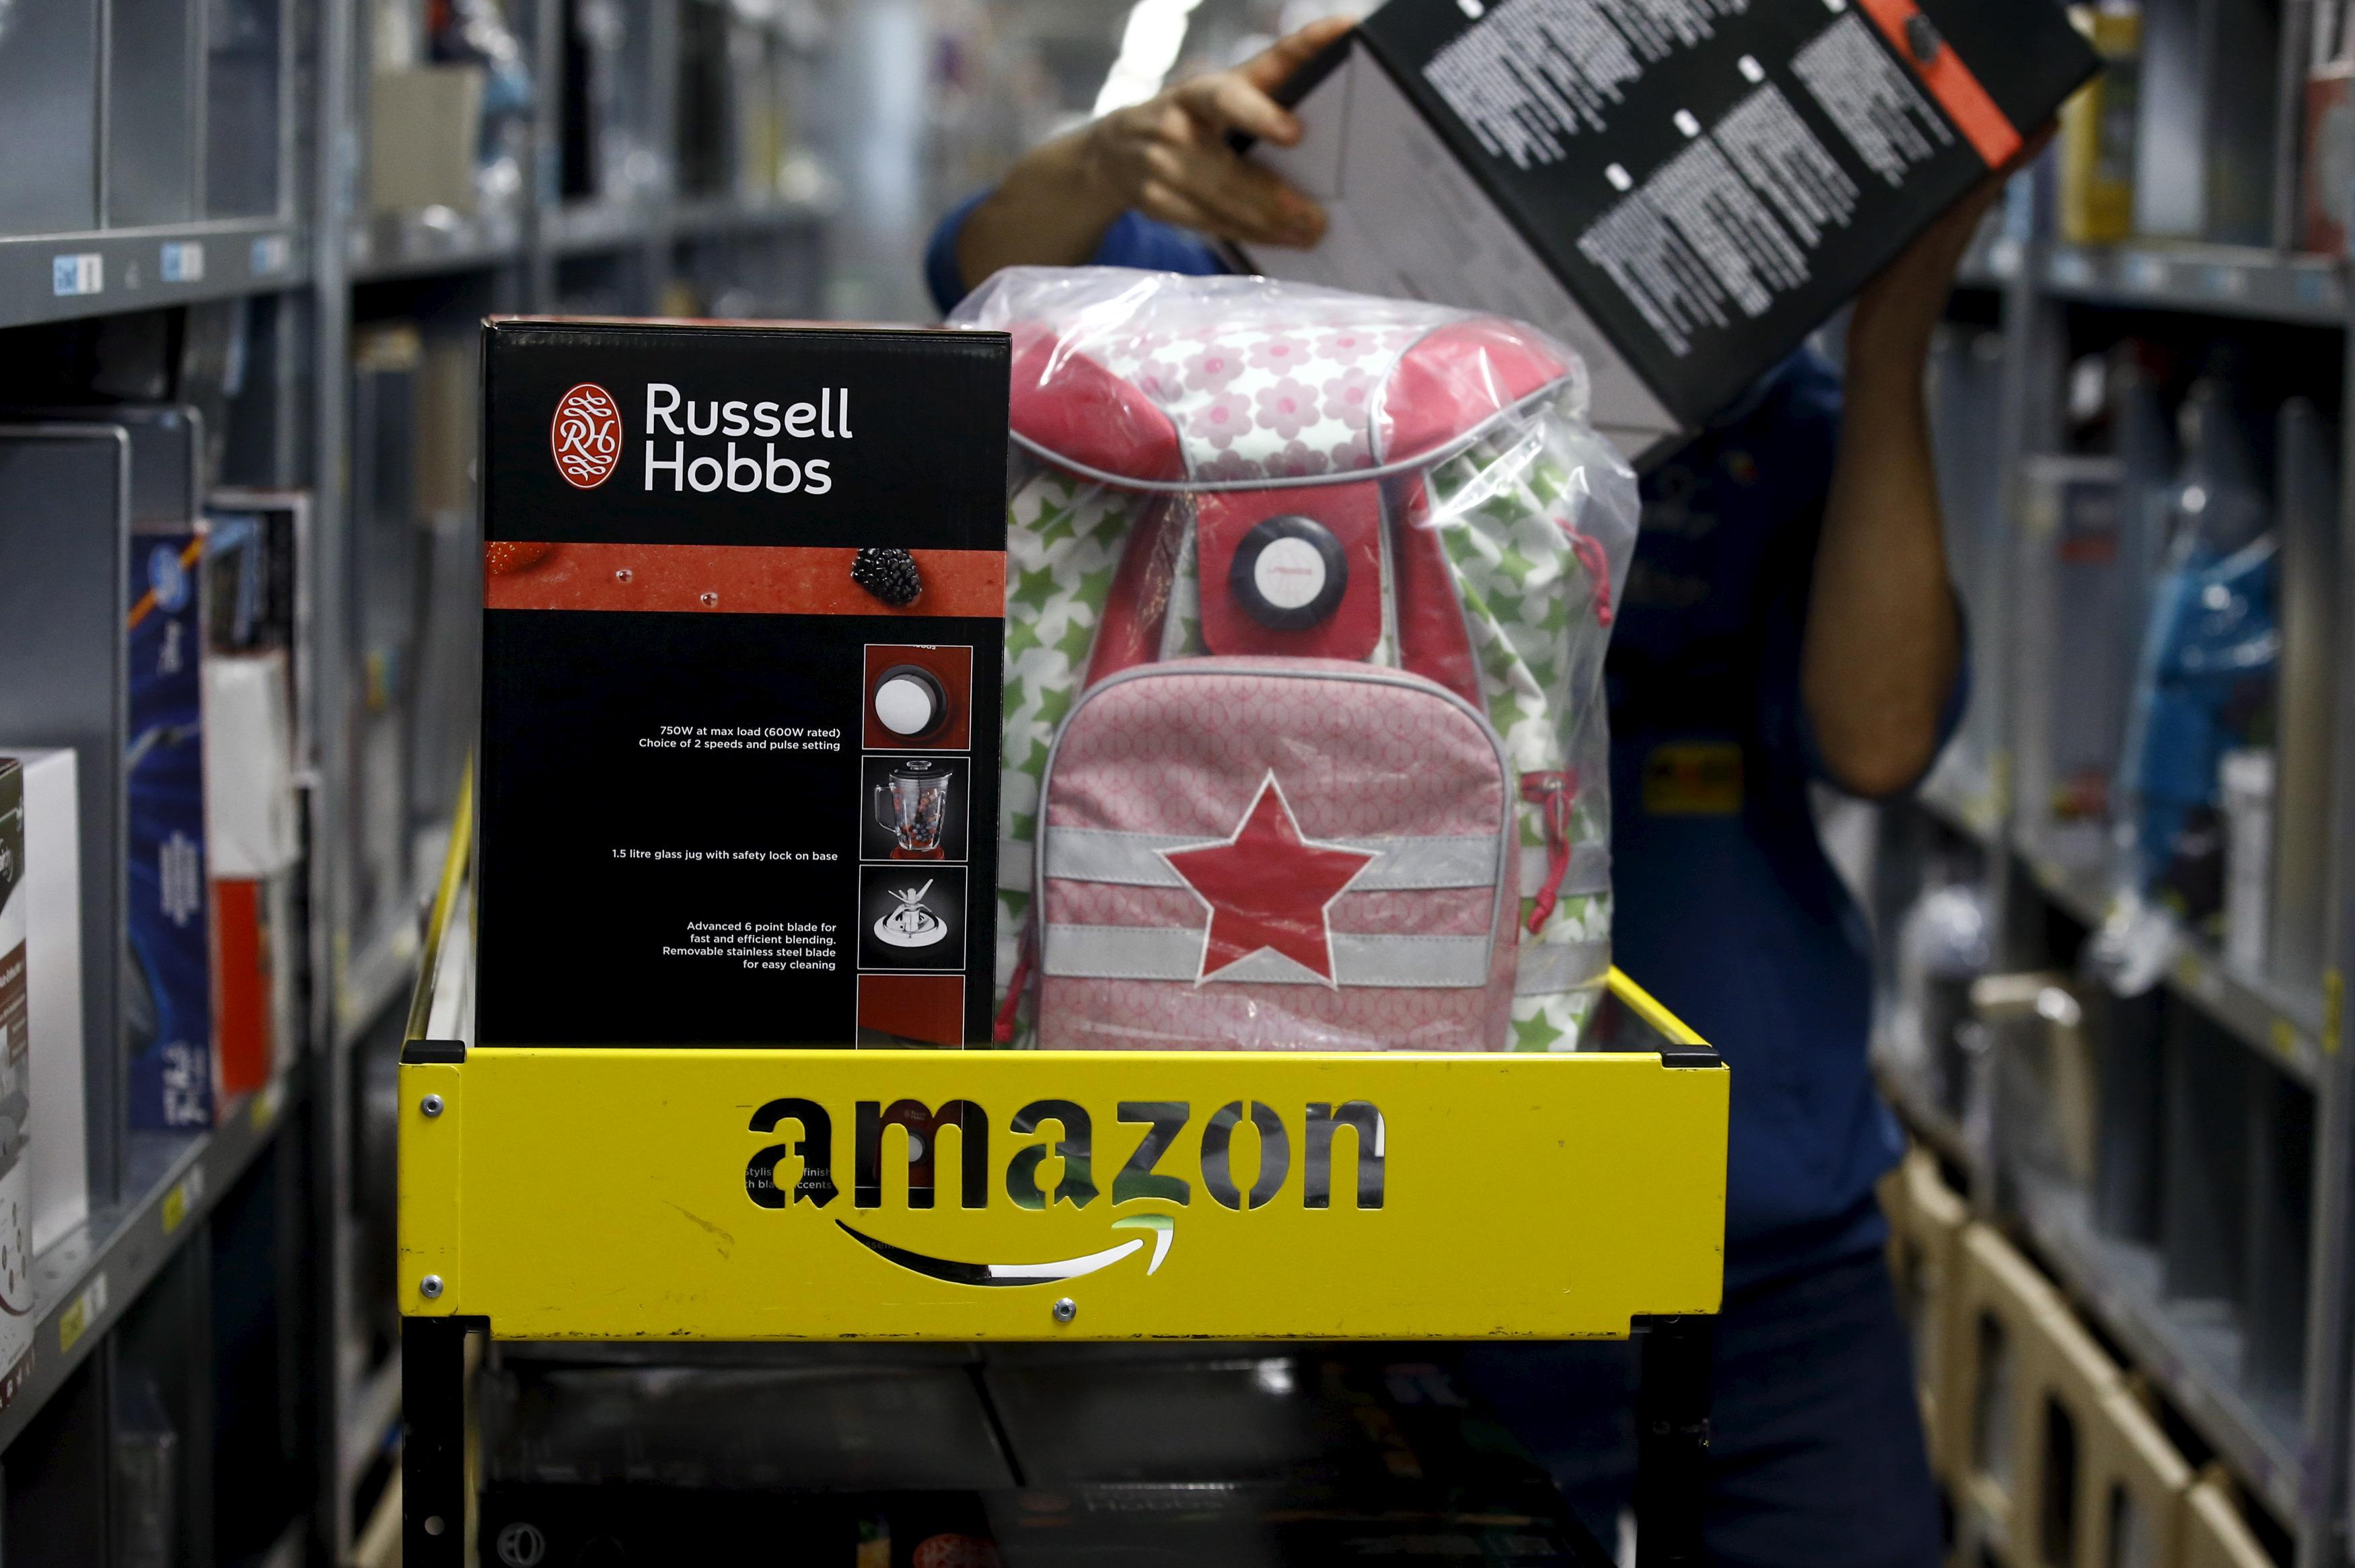 Investigation: How sellers exploit Amazon's loopholes to